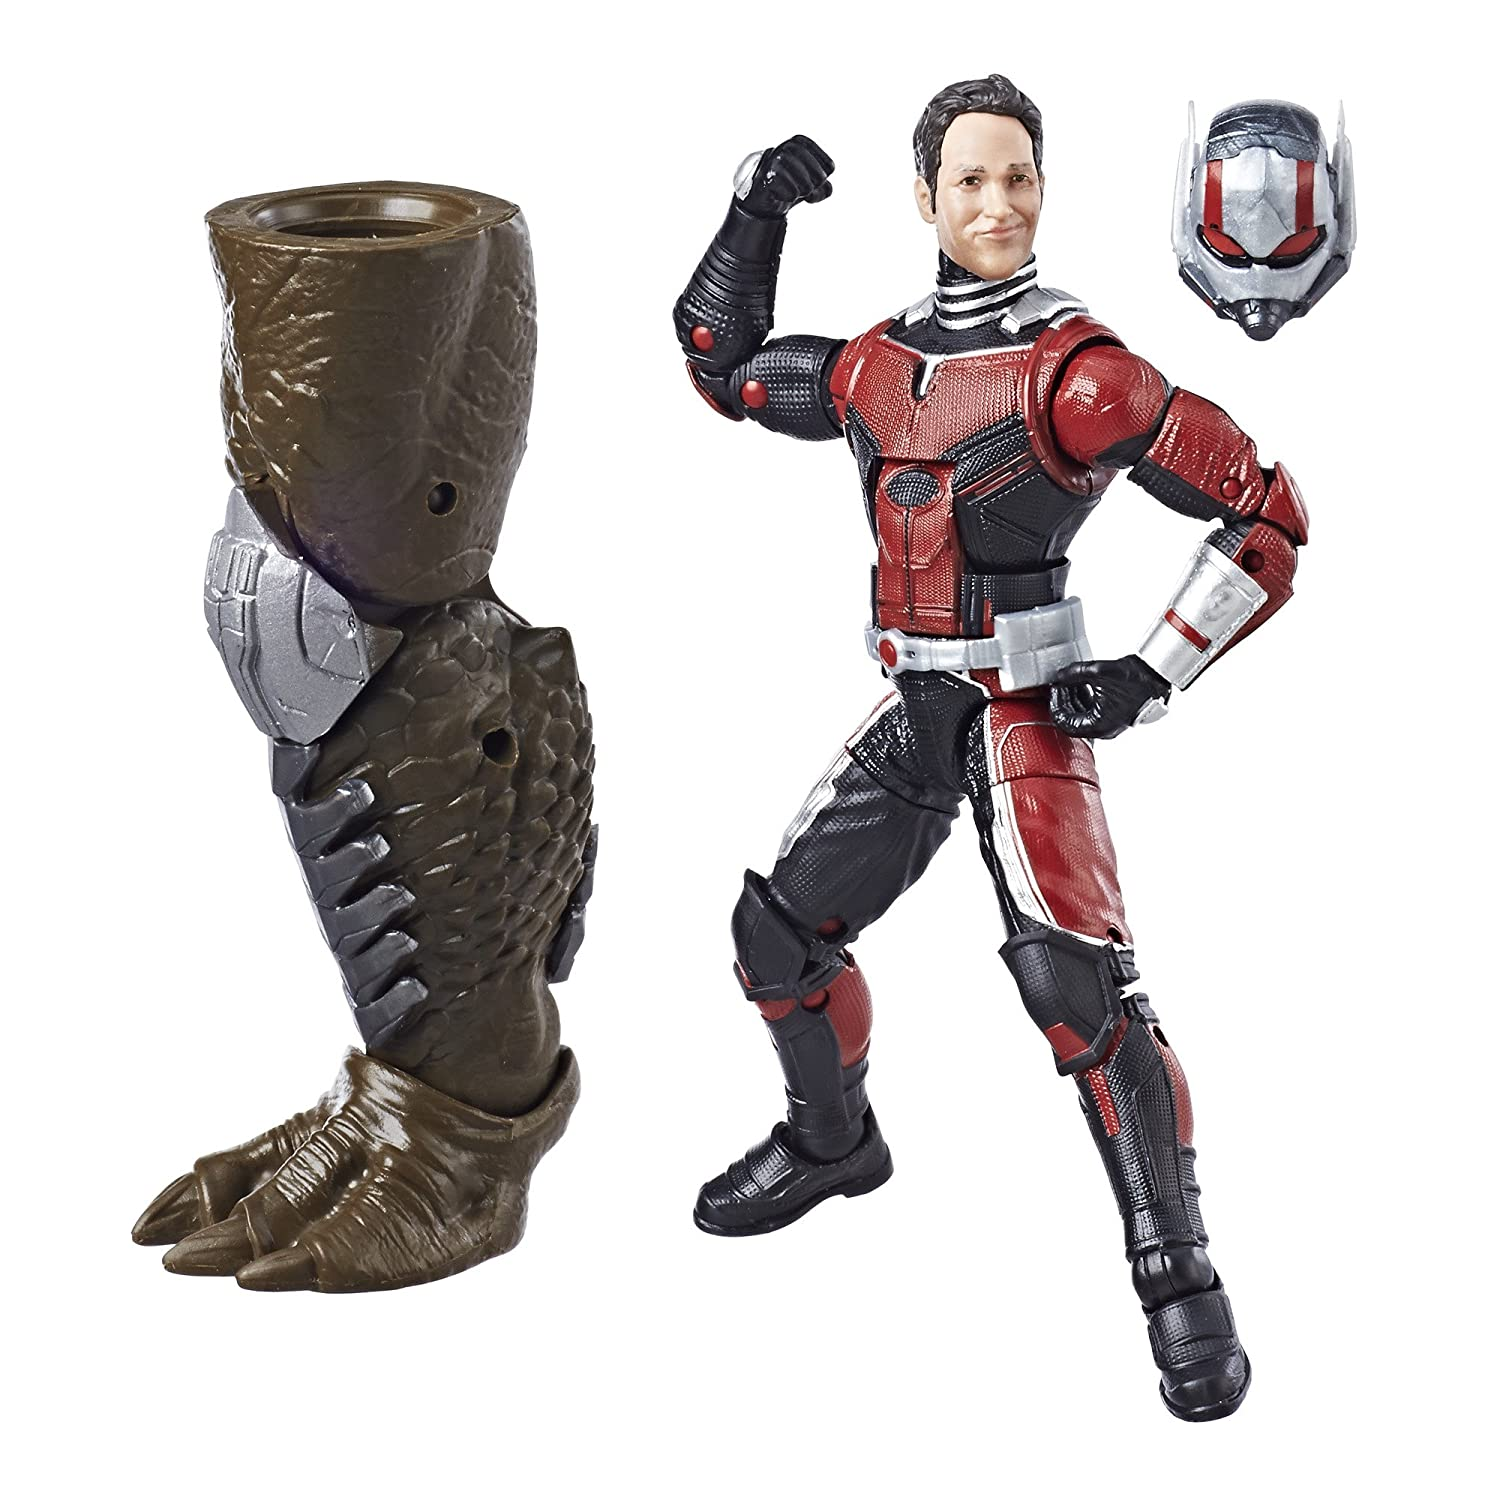 Avengers Marvel Legends Series 6-inch Ant-Man Hasbro E1581